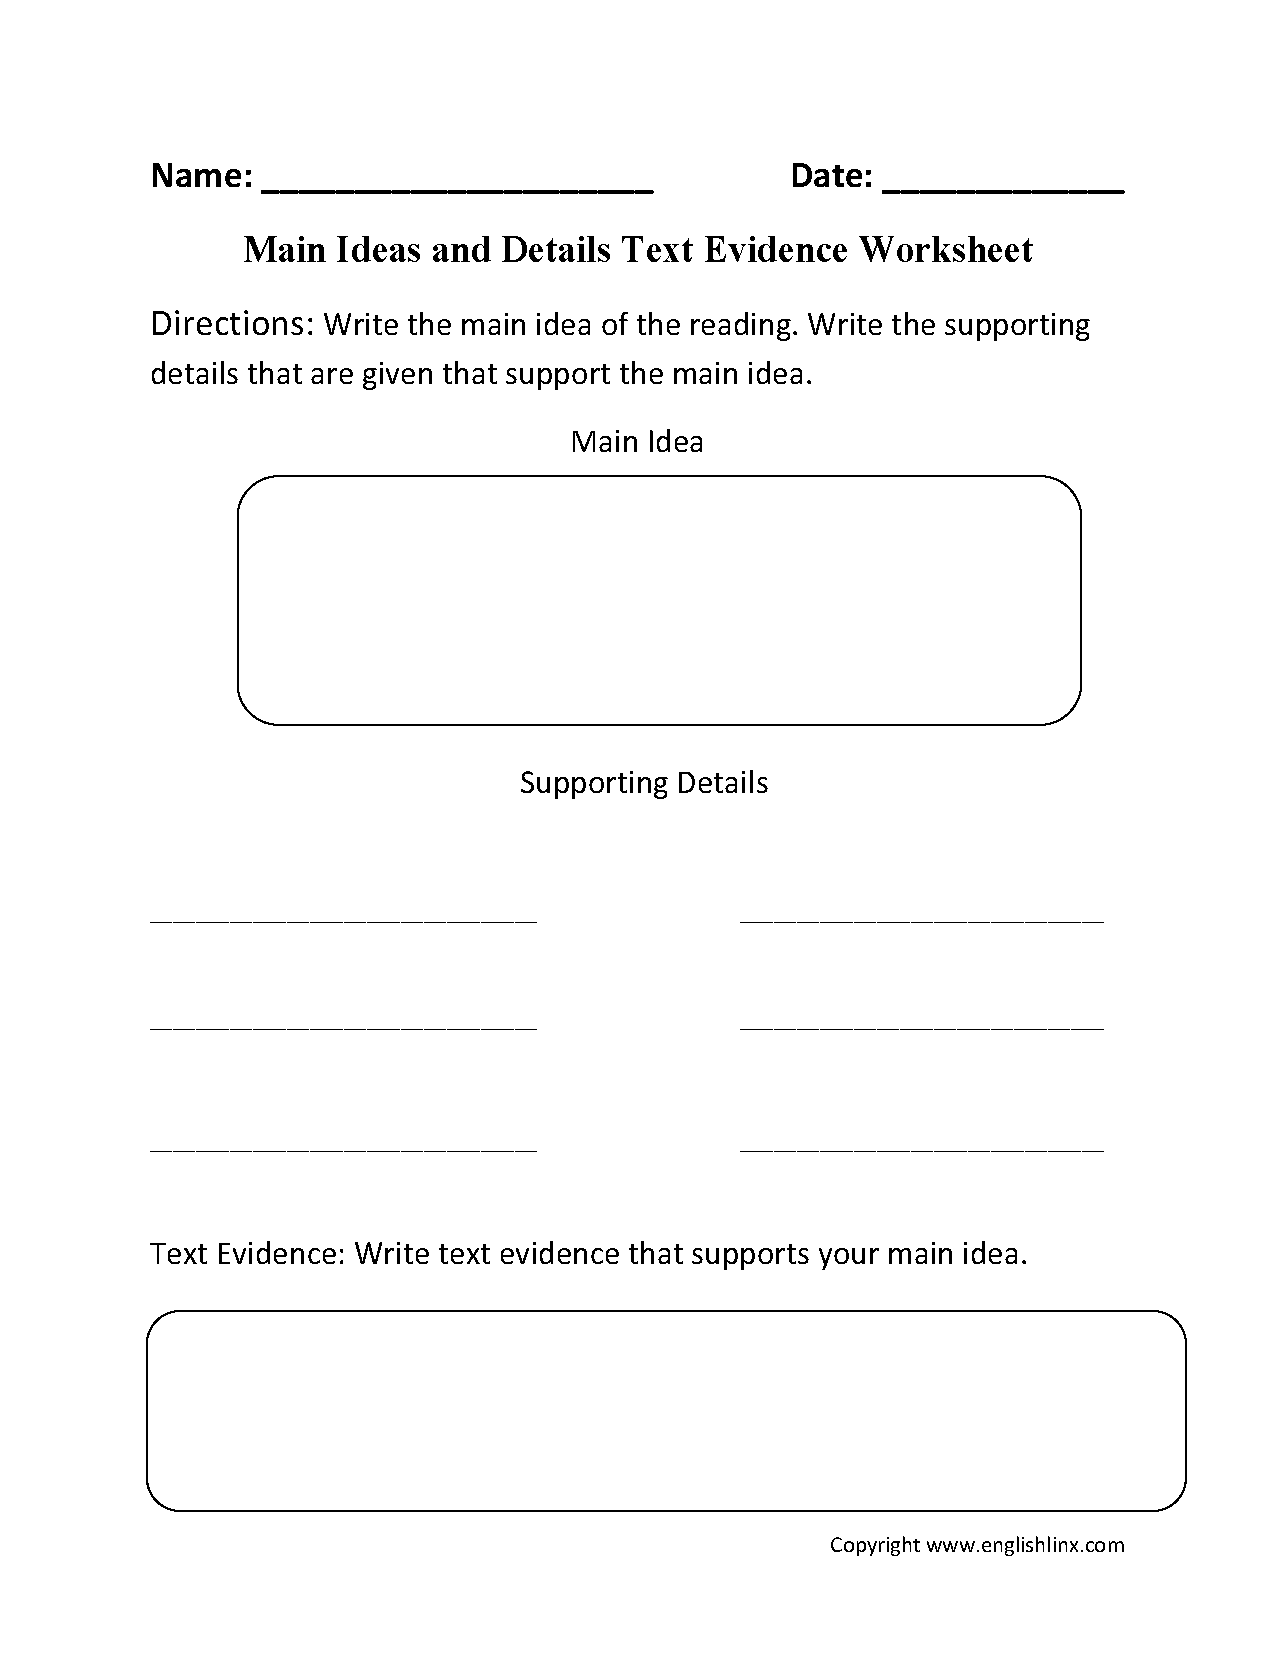 Free Worksheet Main Idea And Details Worksheets reading worksheets main idea text evidence worksheet